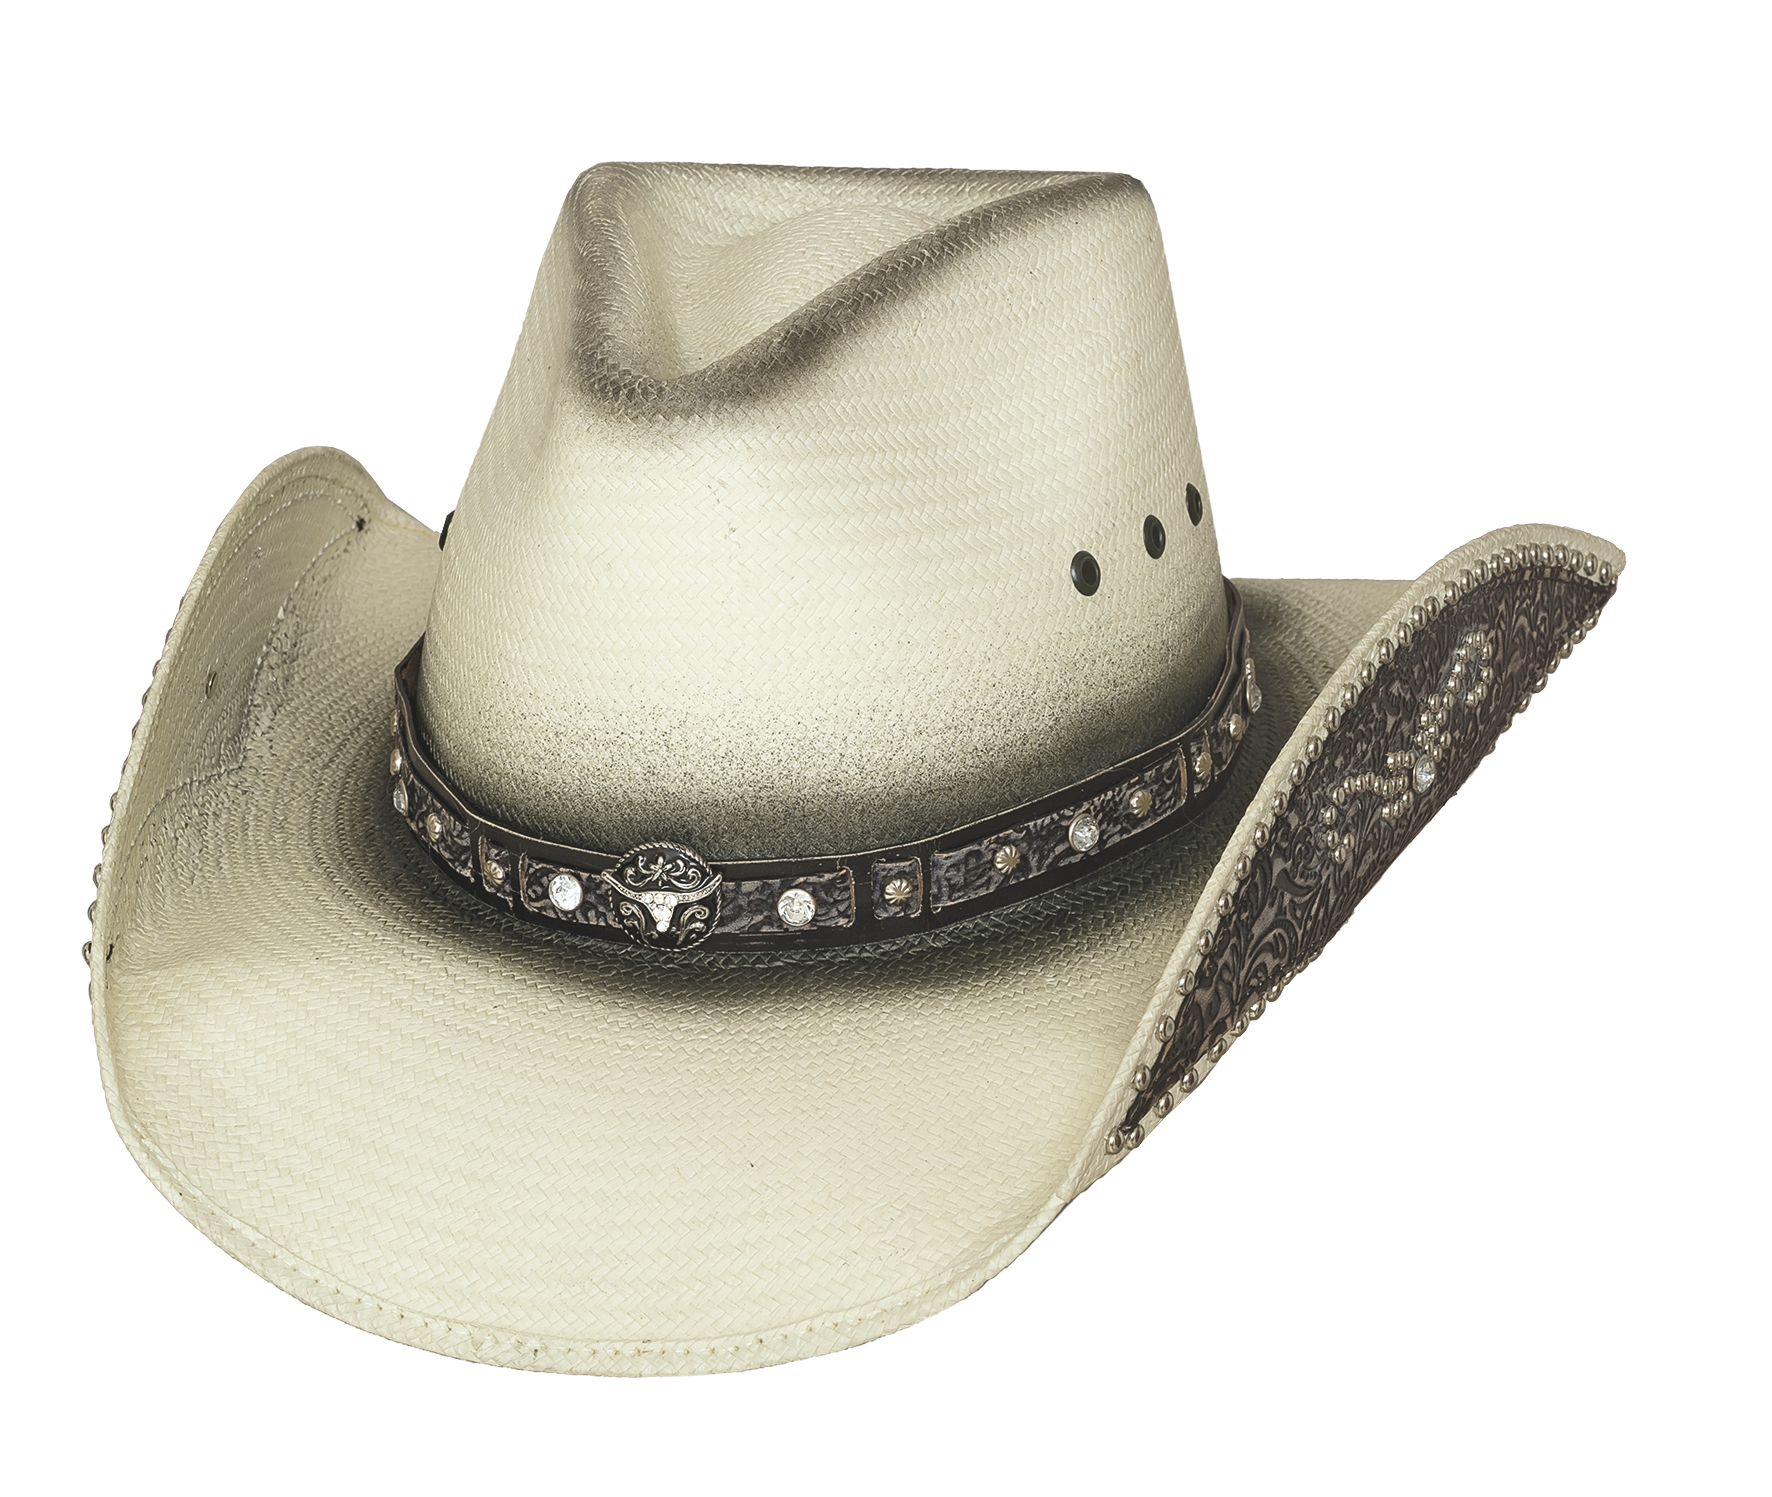 02234d73 ... and Bullhide Hat Co. This message has never been lost throughout the  years. It is one that lingers and remains today along with offering  products with ...